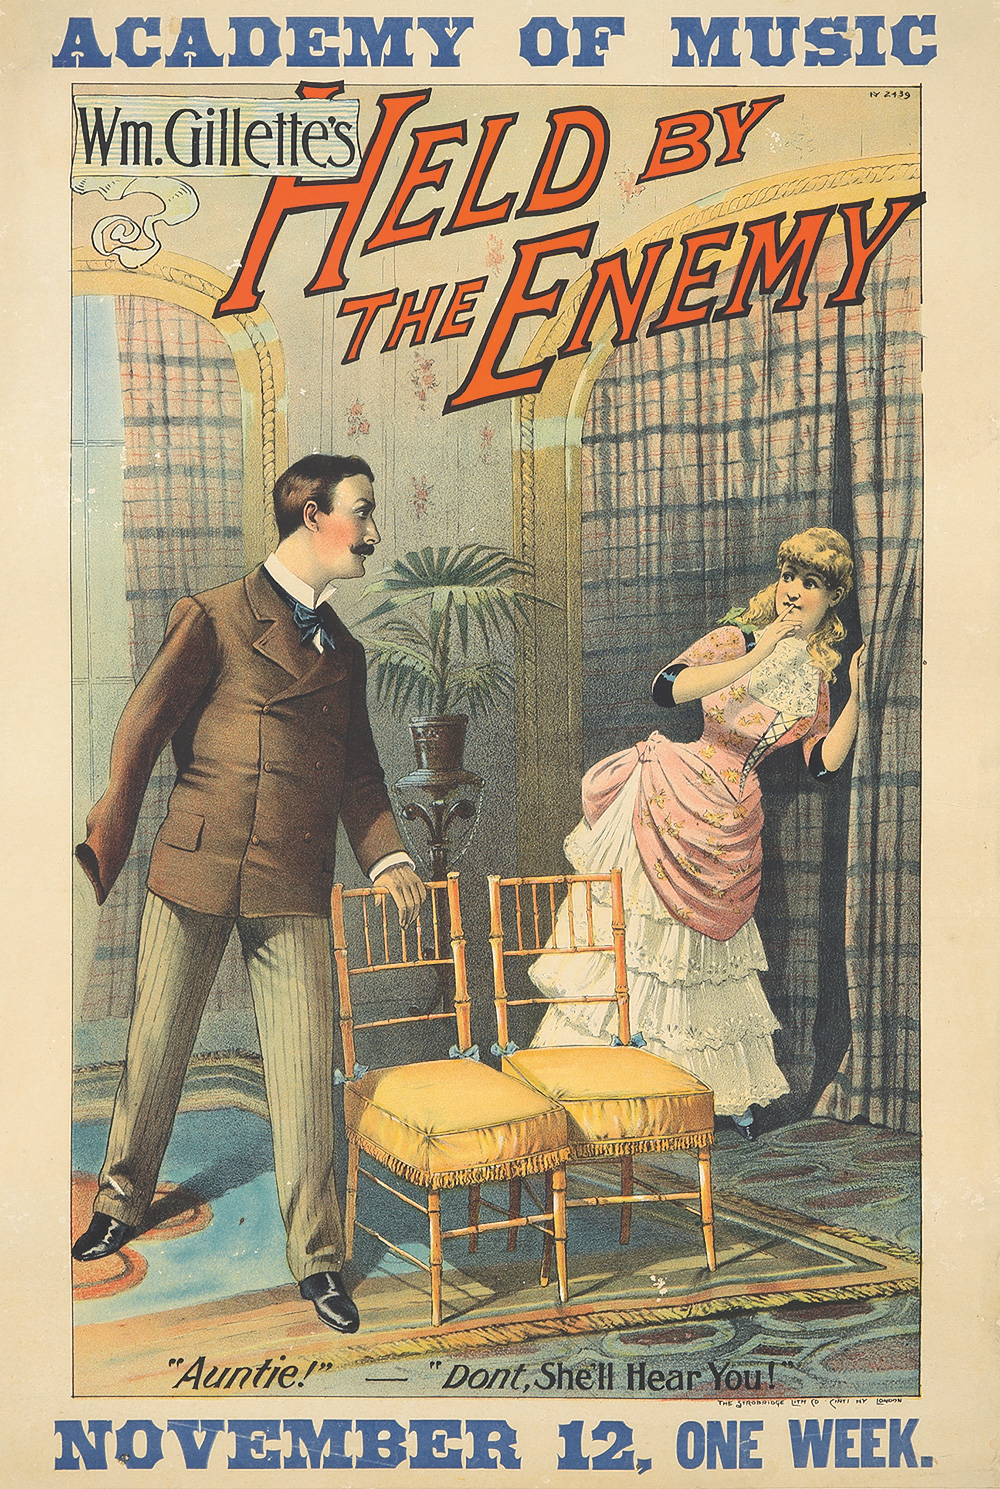 98. Held by the Enemy. 1886.